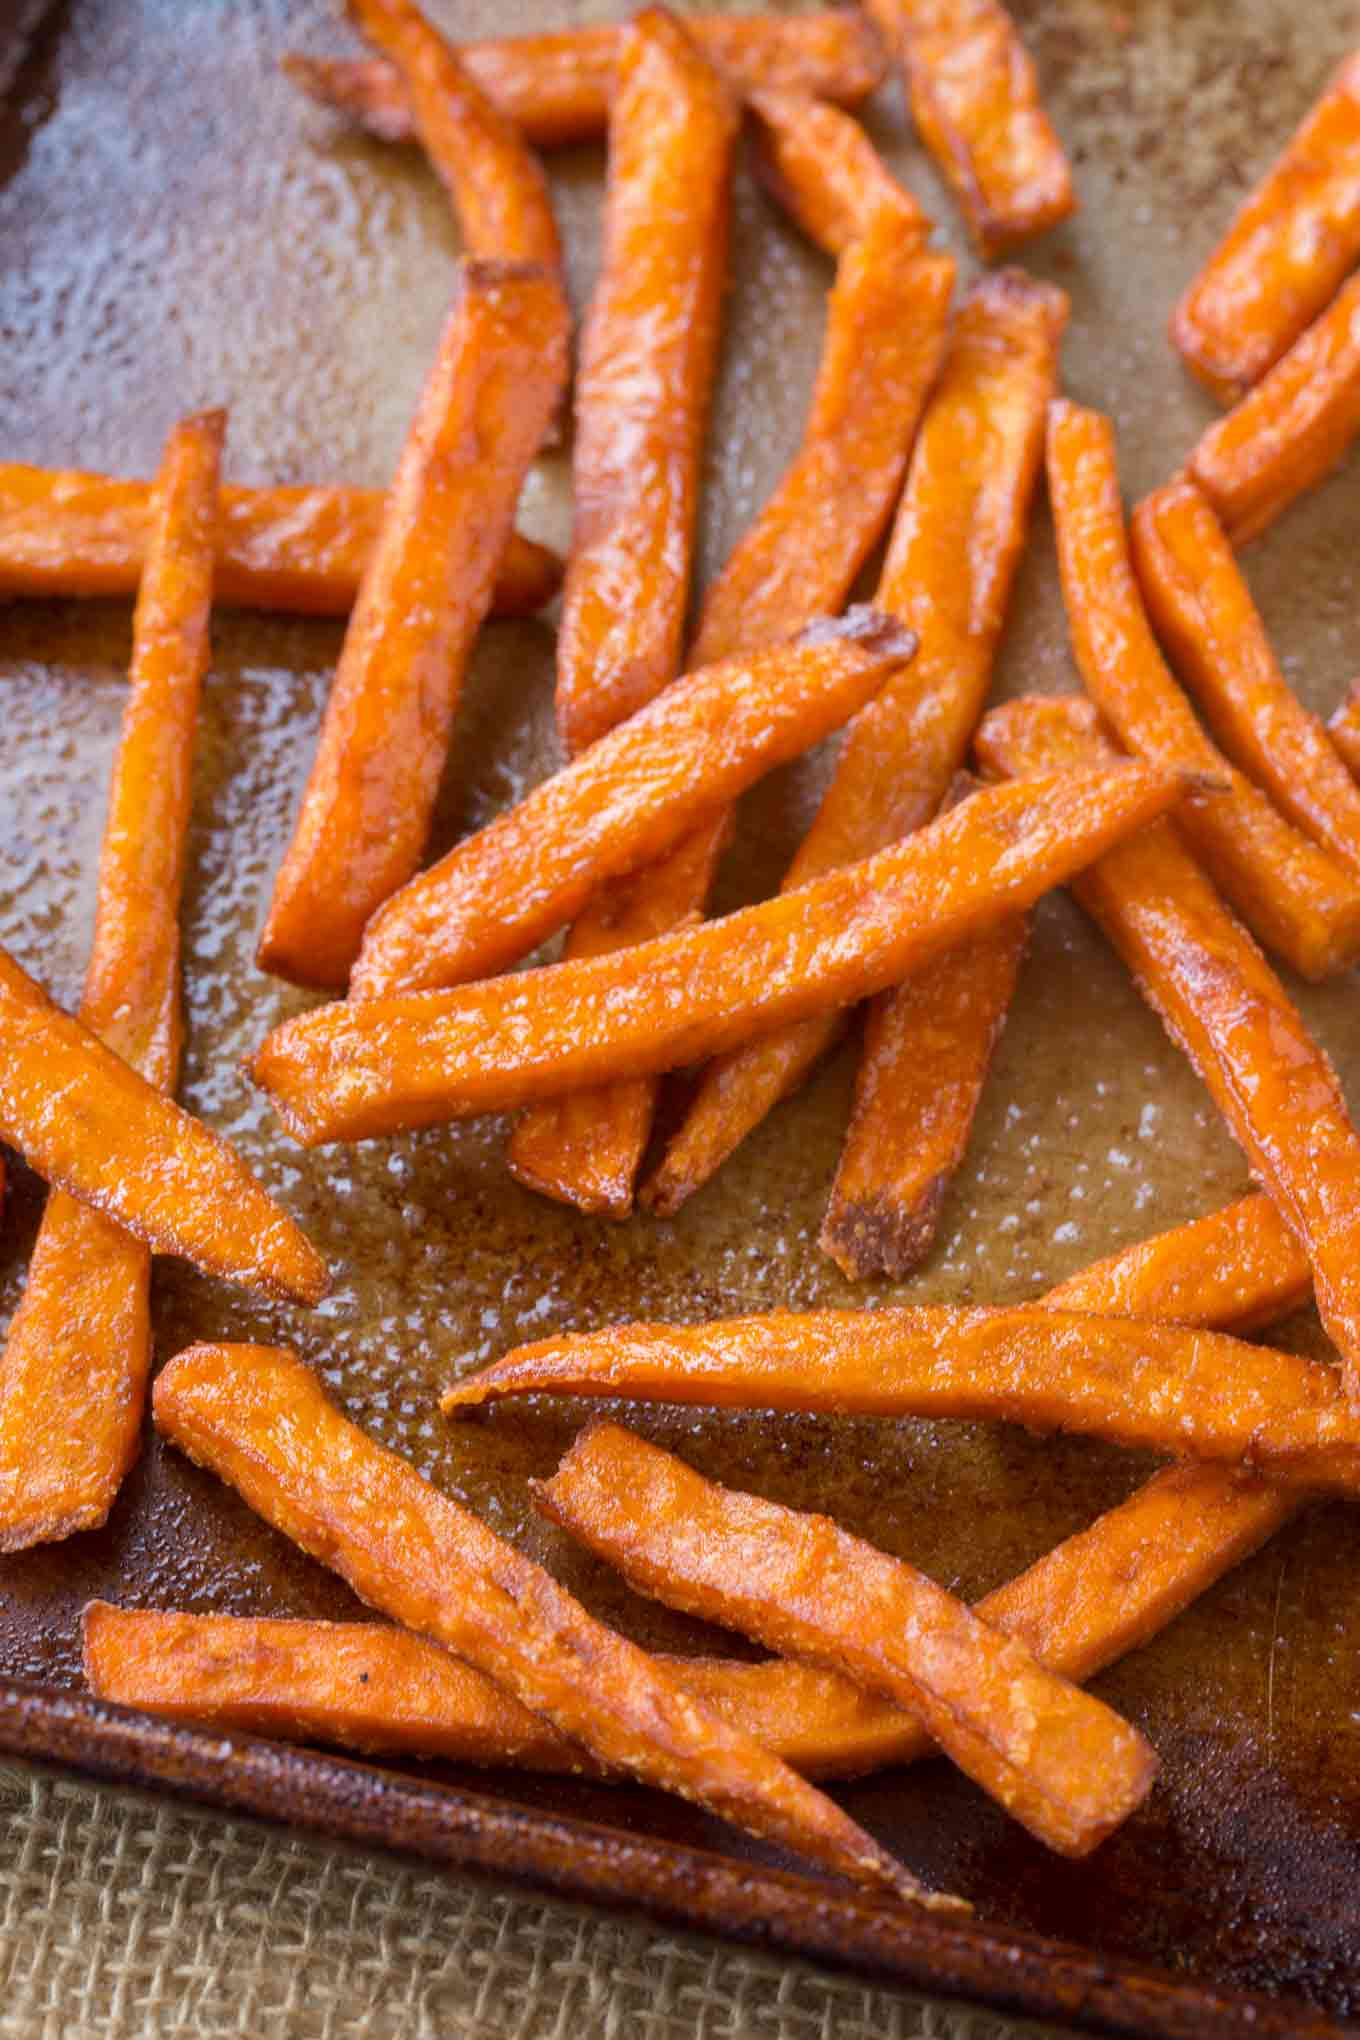 Oven Baked Sweet Potato Fries Cooking Made Healthy